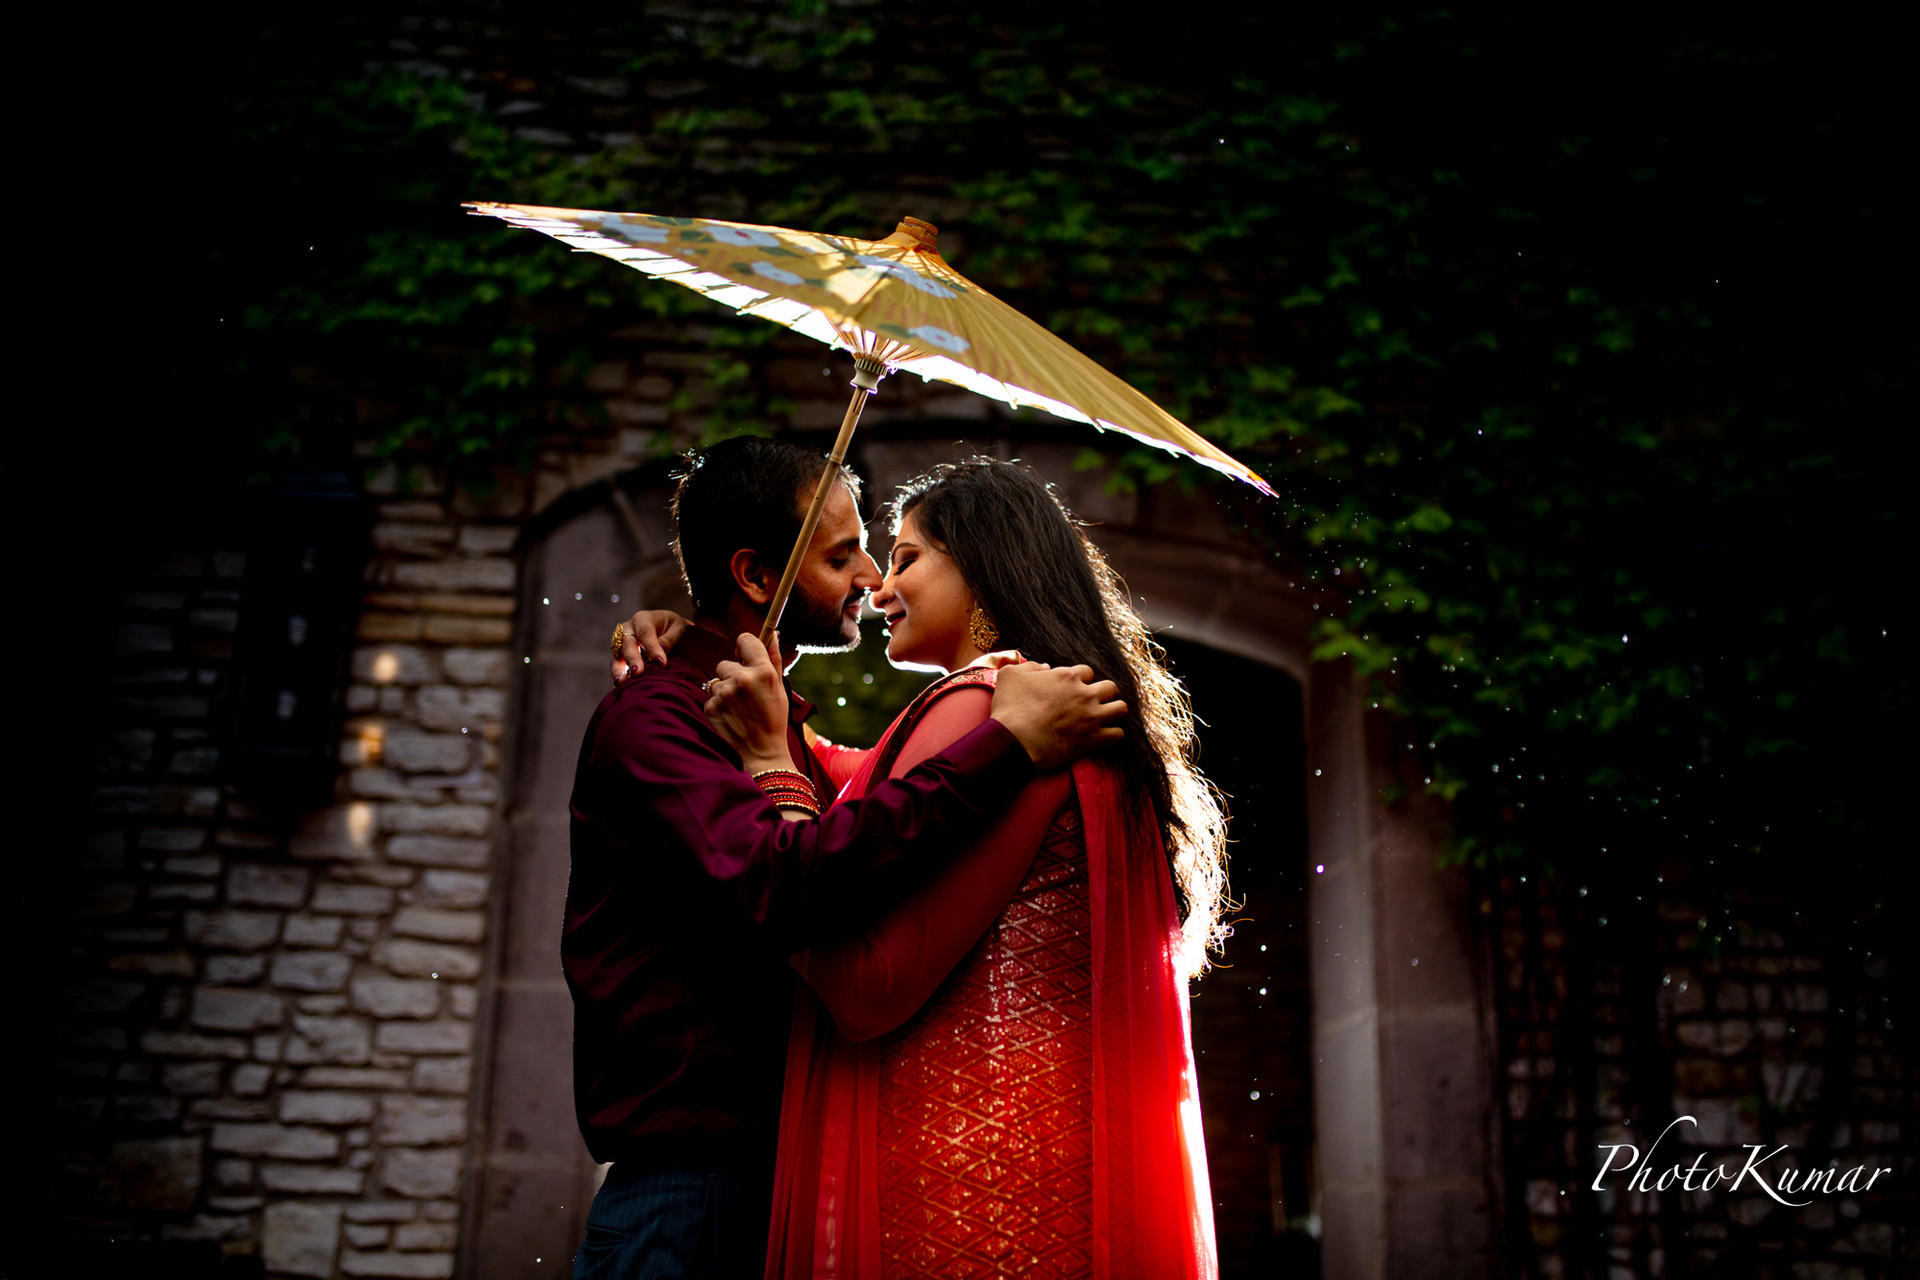 PhotoKumar-Anna and Riyaz-28.jpg